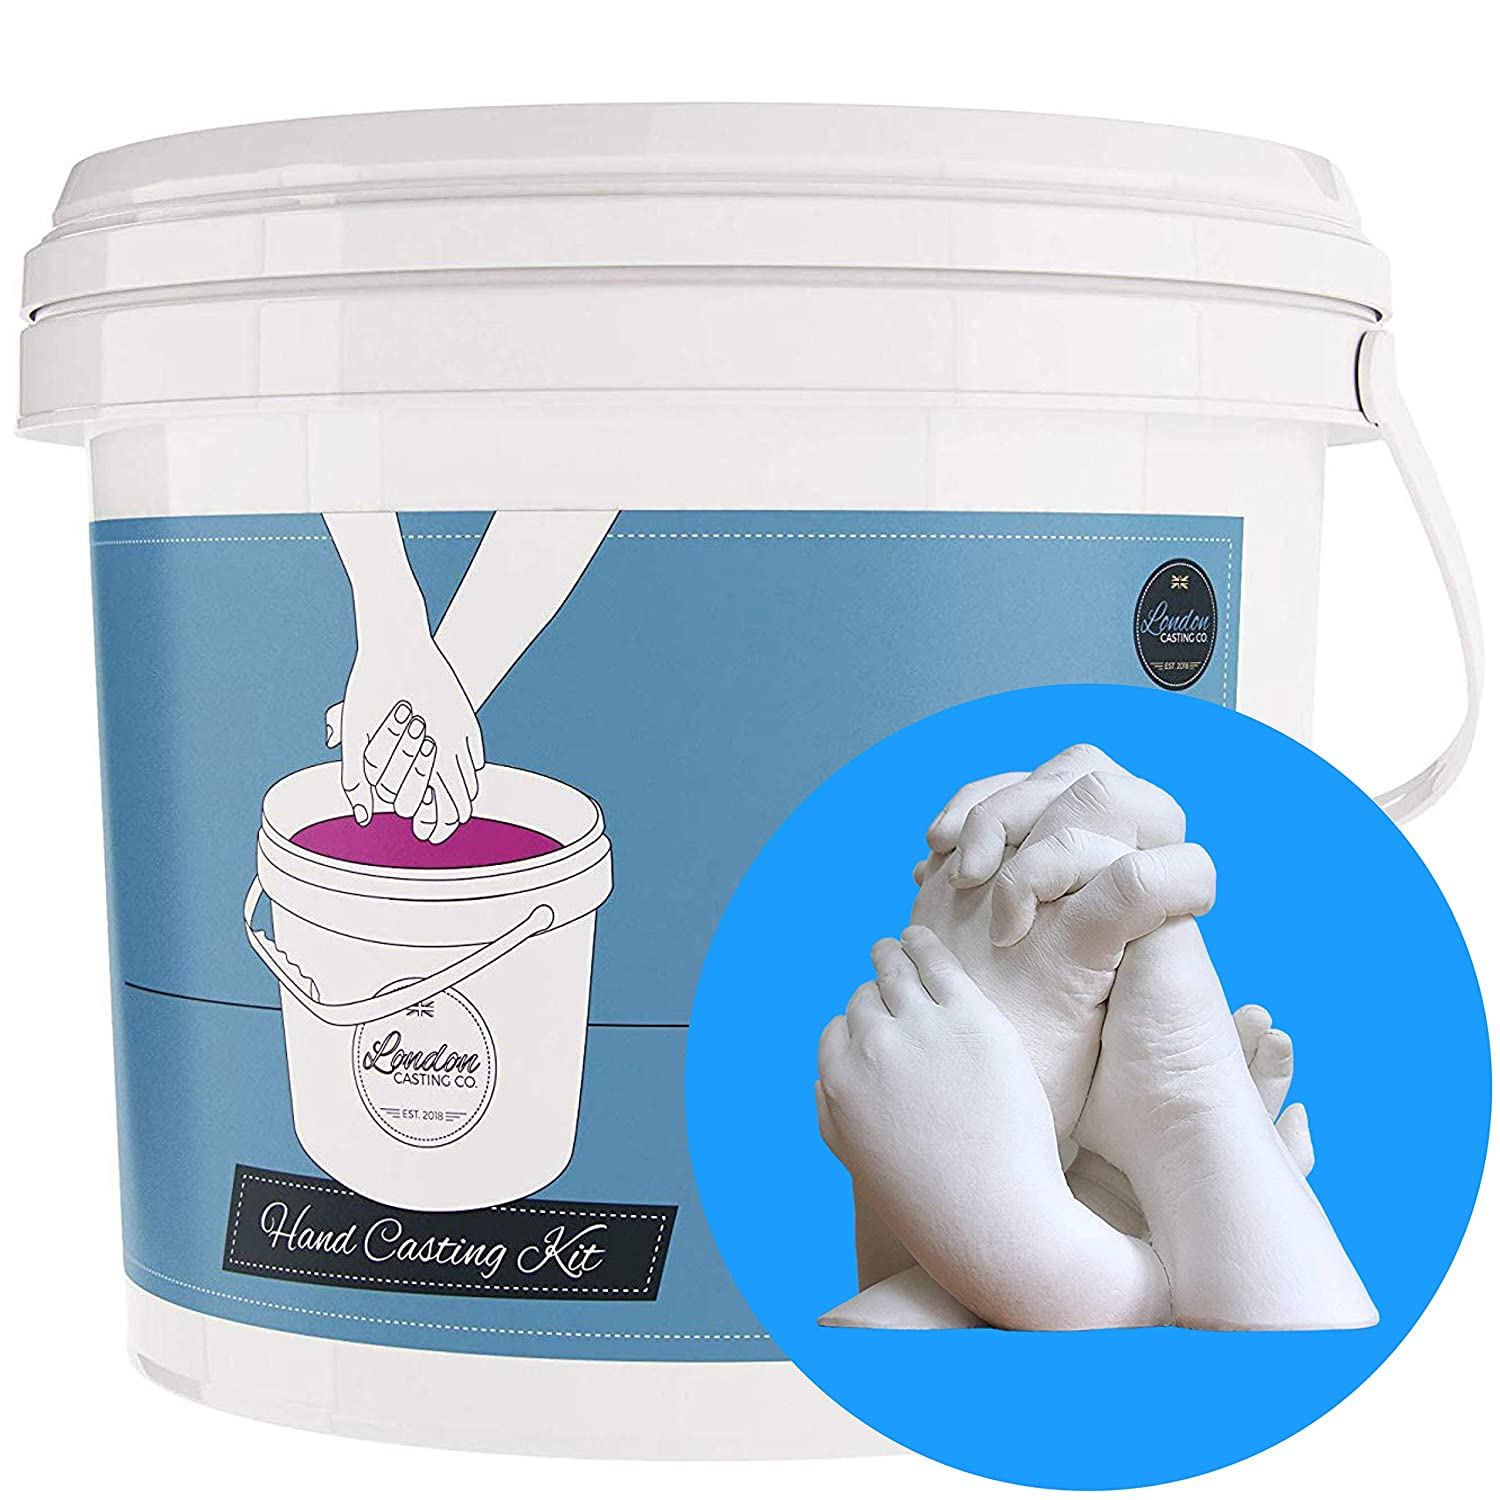 !!!Flash Sale!!! Couples 3D Casting kit - Holding Hands Sculpture -White Rubber Mould & Plaster of Paris - Keepsake Gift for Couples, Friends, Families - London Casting Co. - Regular (2 Adult Hands) LA BRANDS LTD